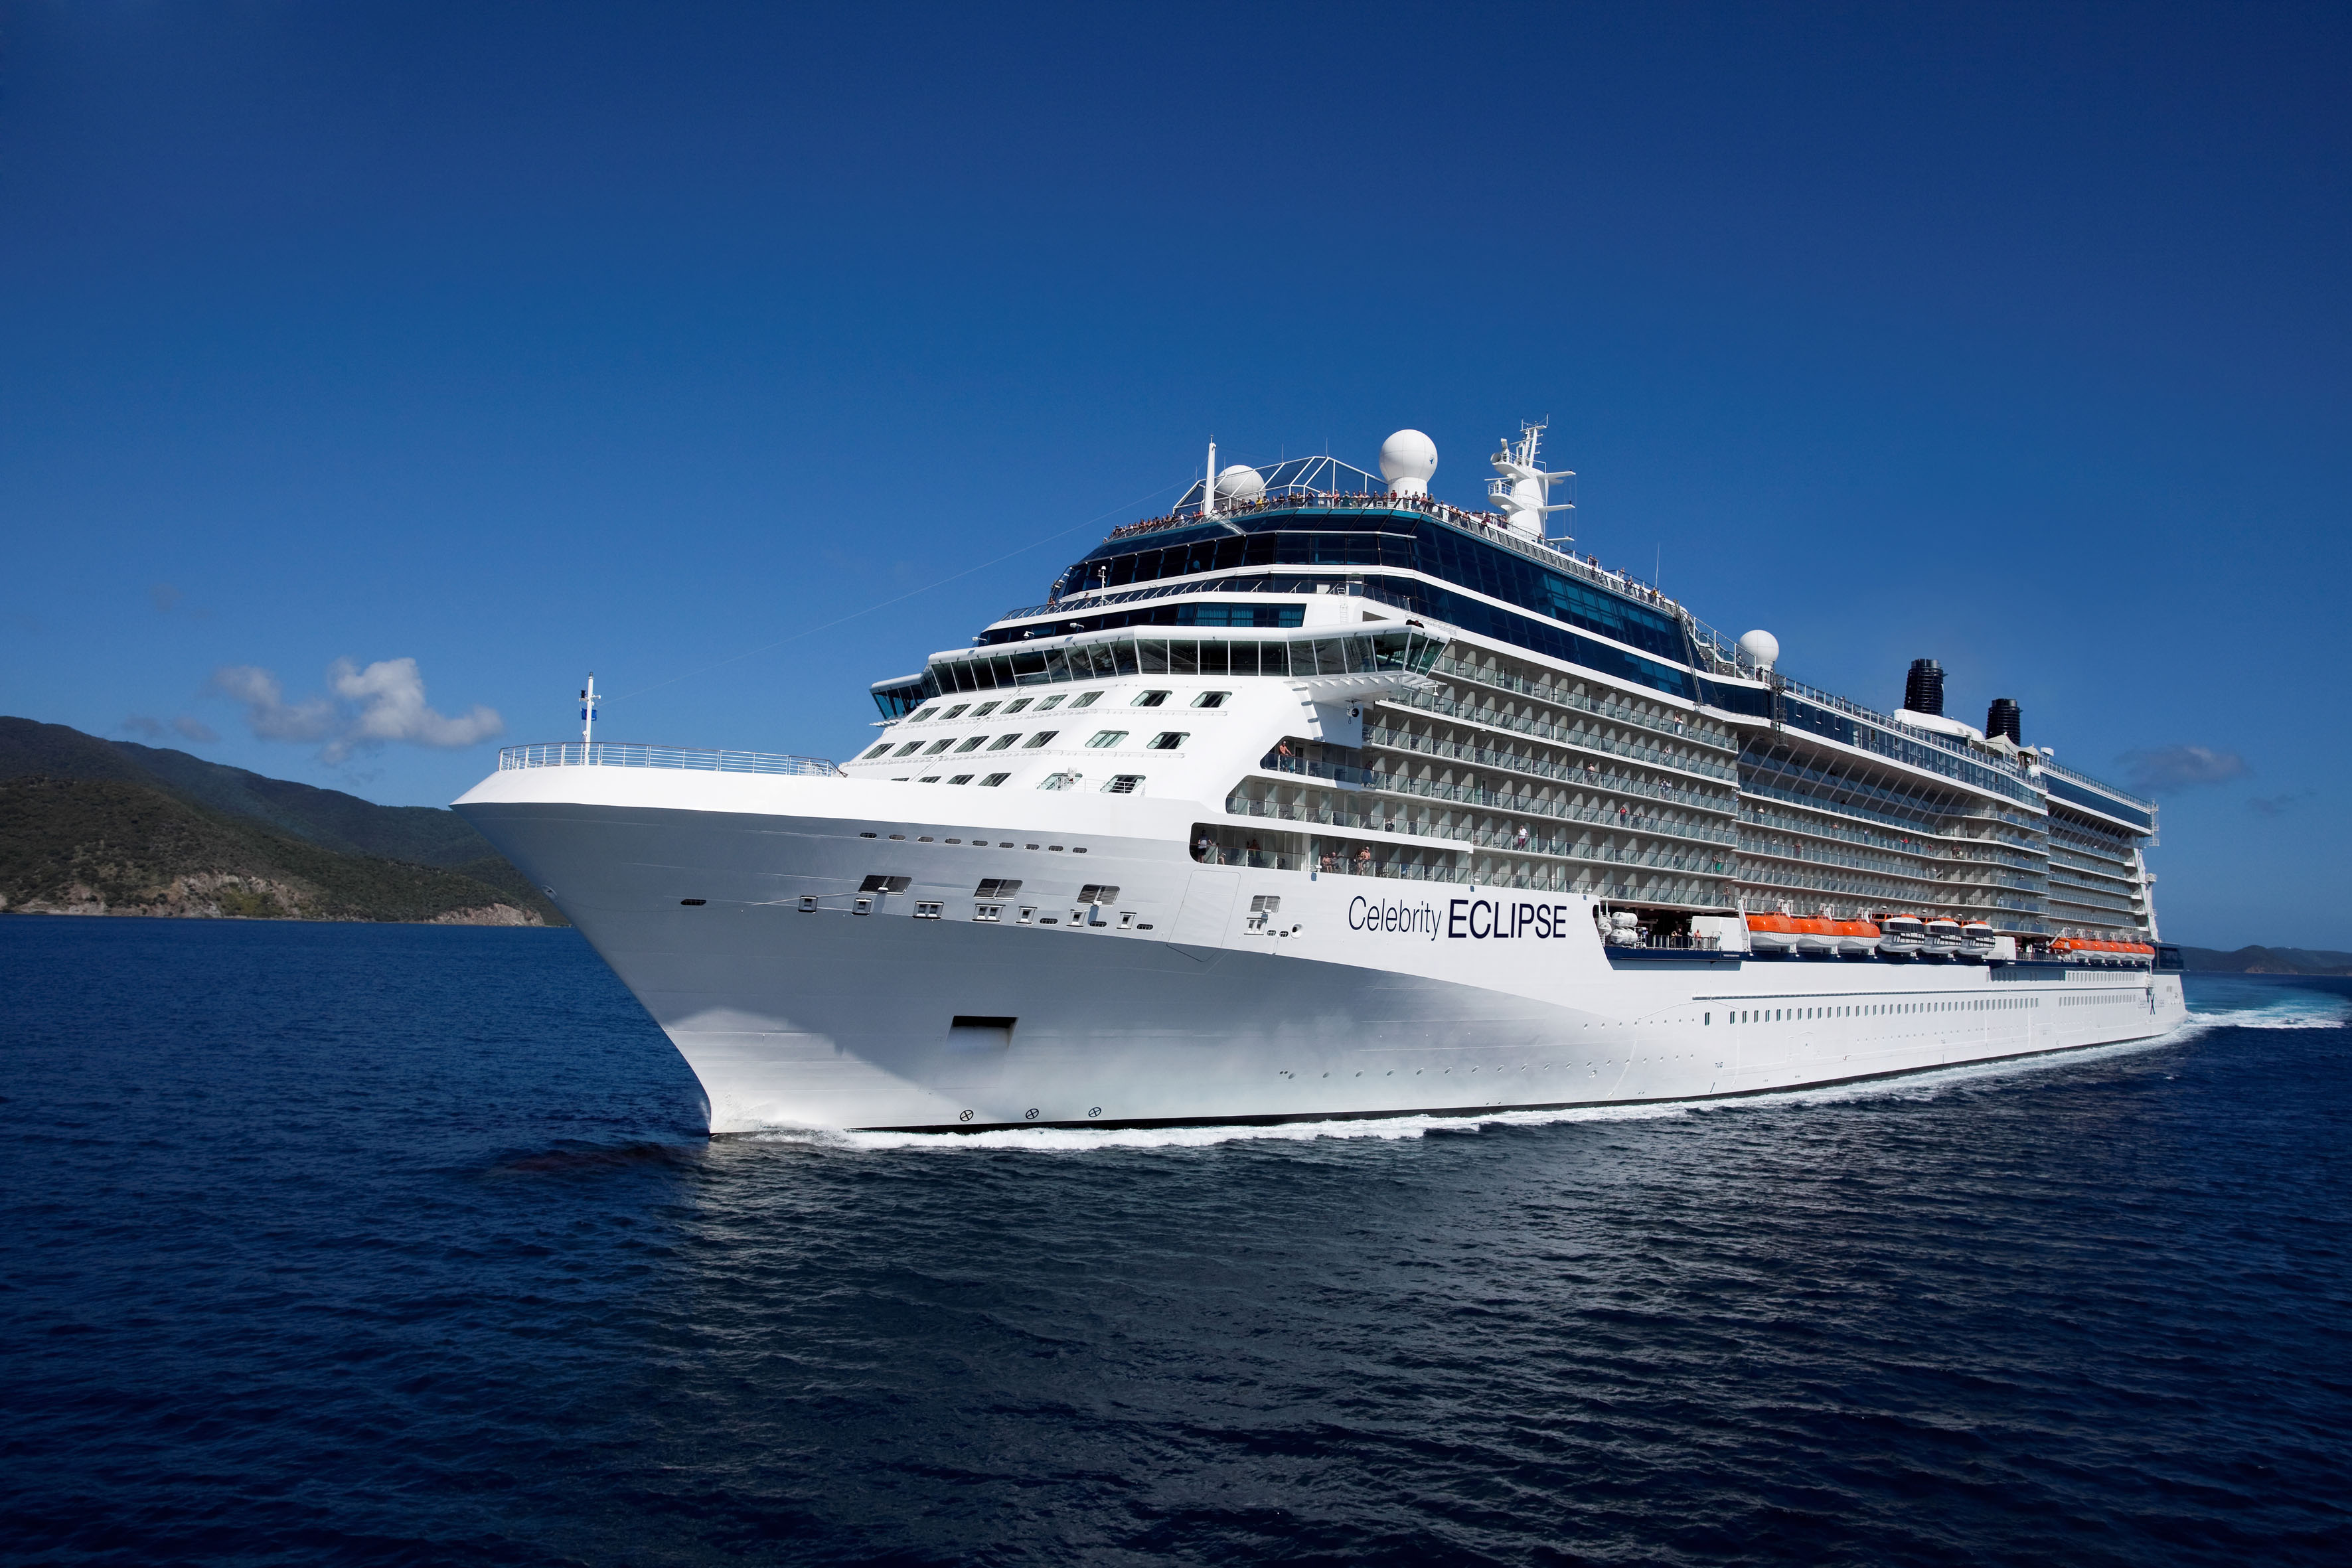 Internet at Sea: 7 Things You Need to Know - Cruise Critic